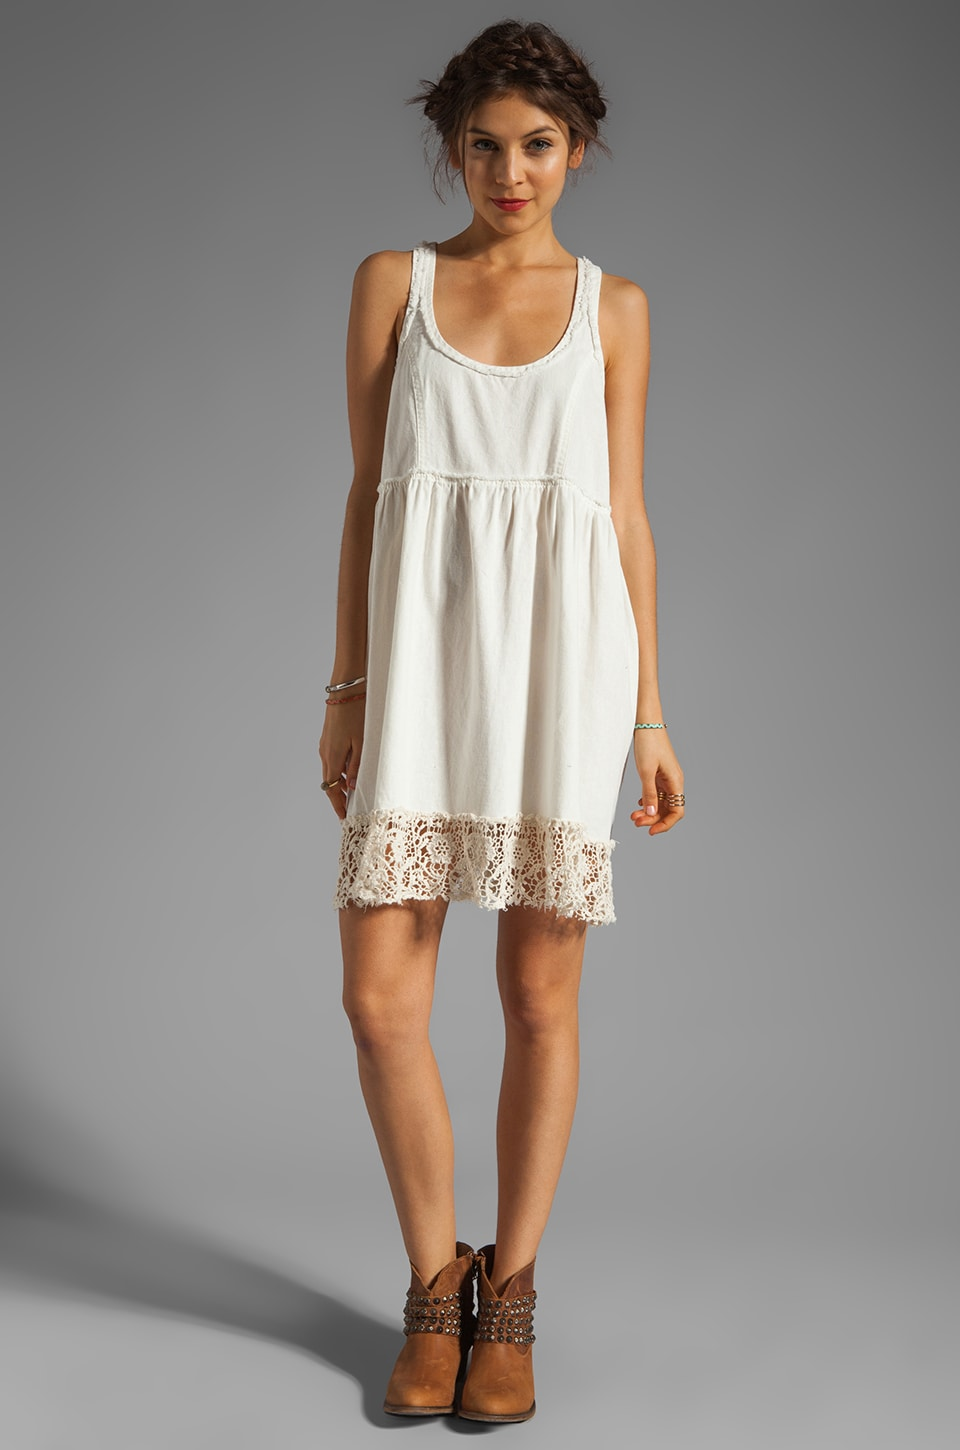 Free People Linen Babydoll Dress in Ivory